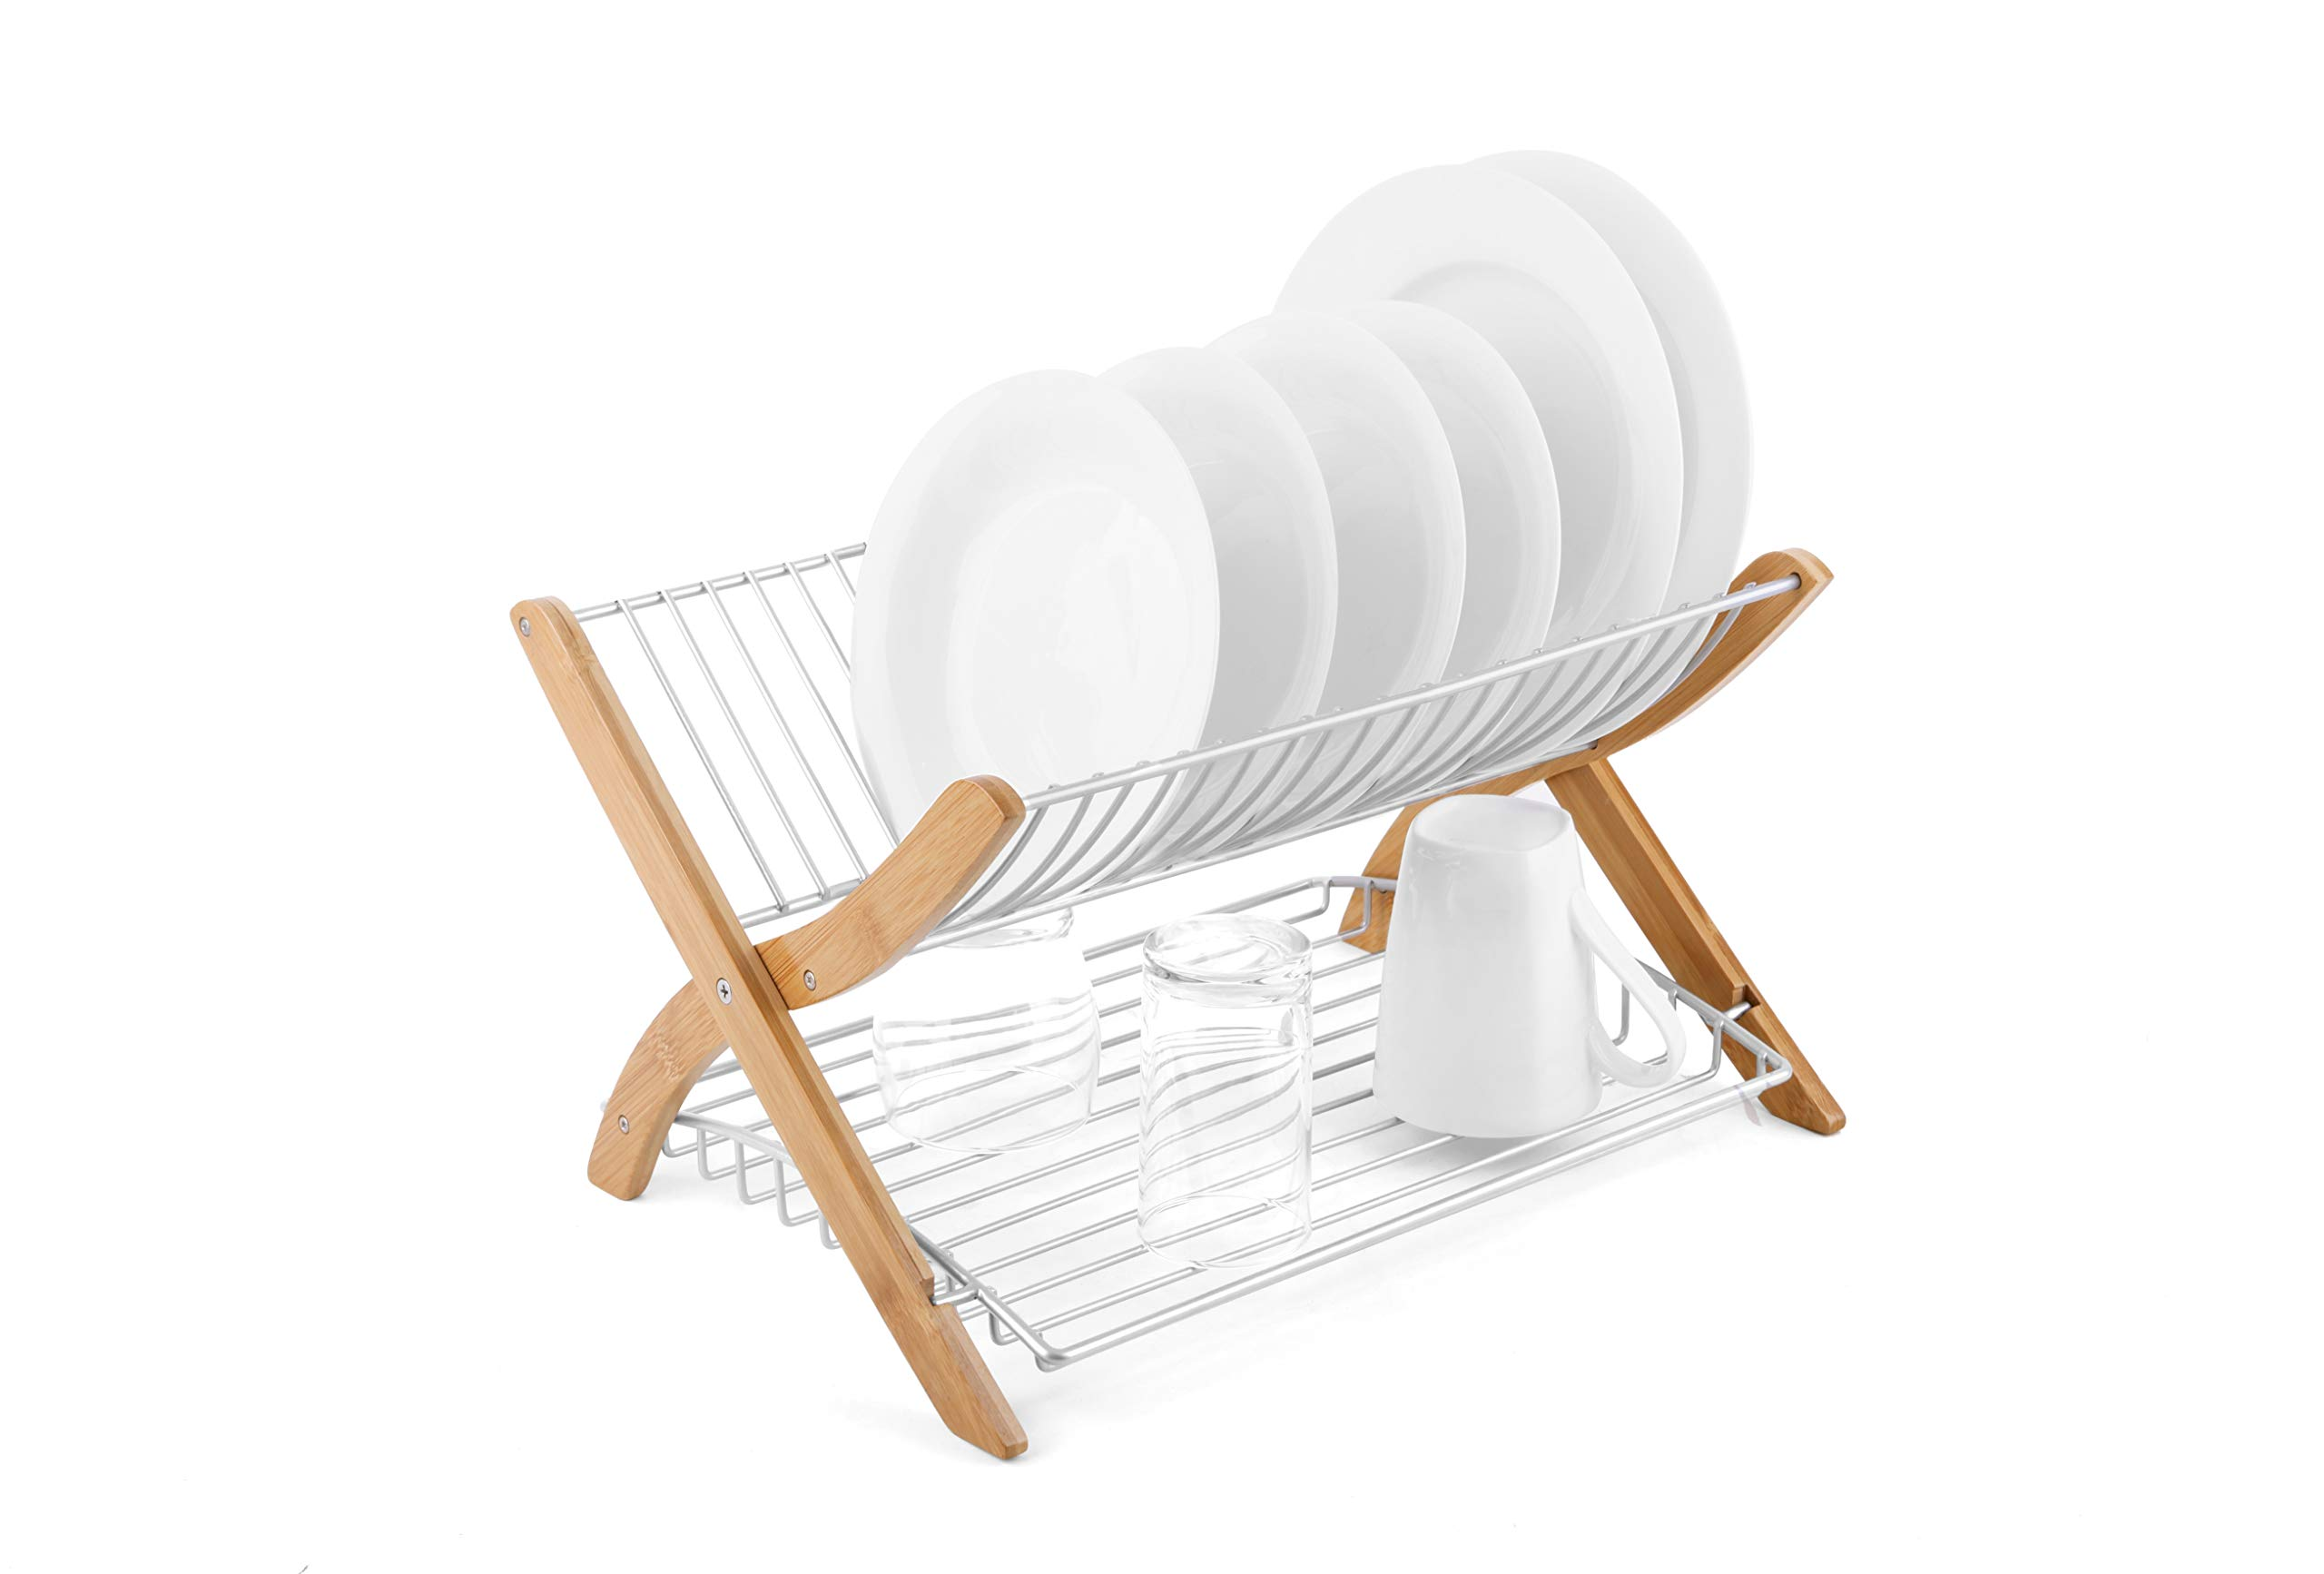 Umbra Dish Drying Rack - (Nickel/Wood Finish) Collapsible Dish Drainer and Foldable Drying Rack for Kitchen Counter That Dries your Dishes Twice as Fast by Umbra (Image #1)